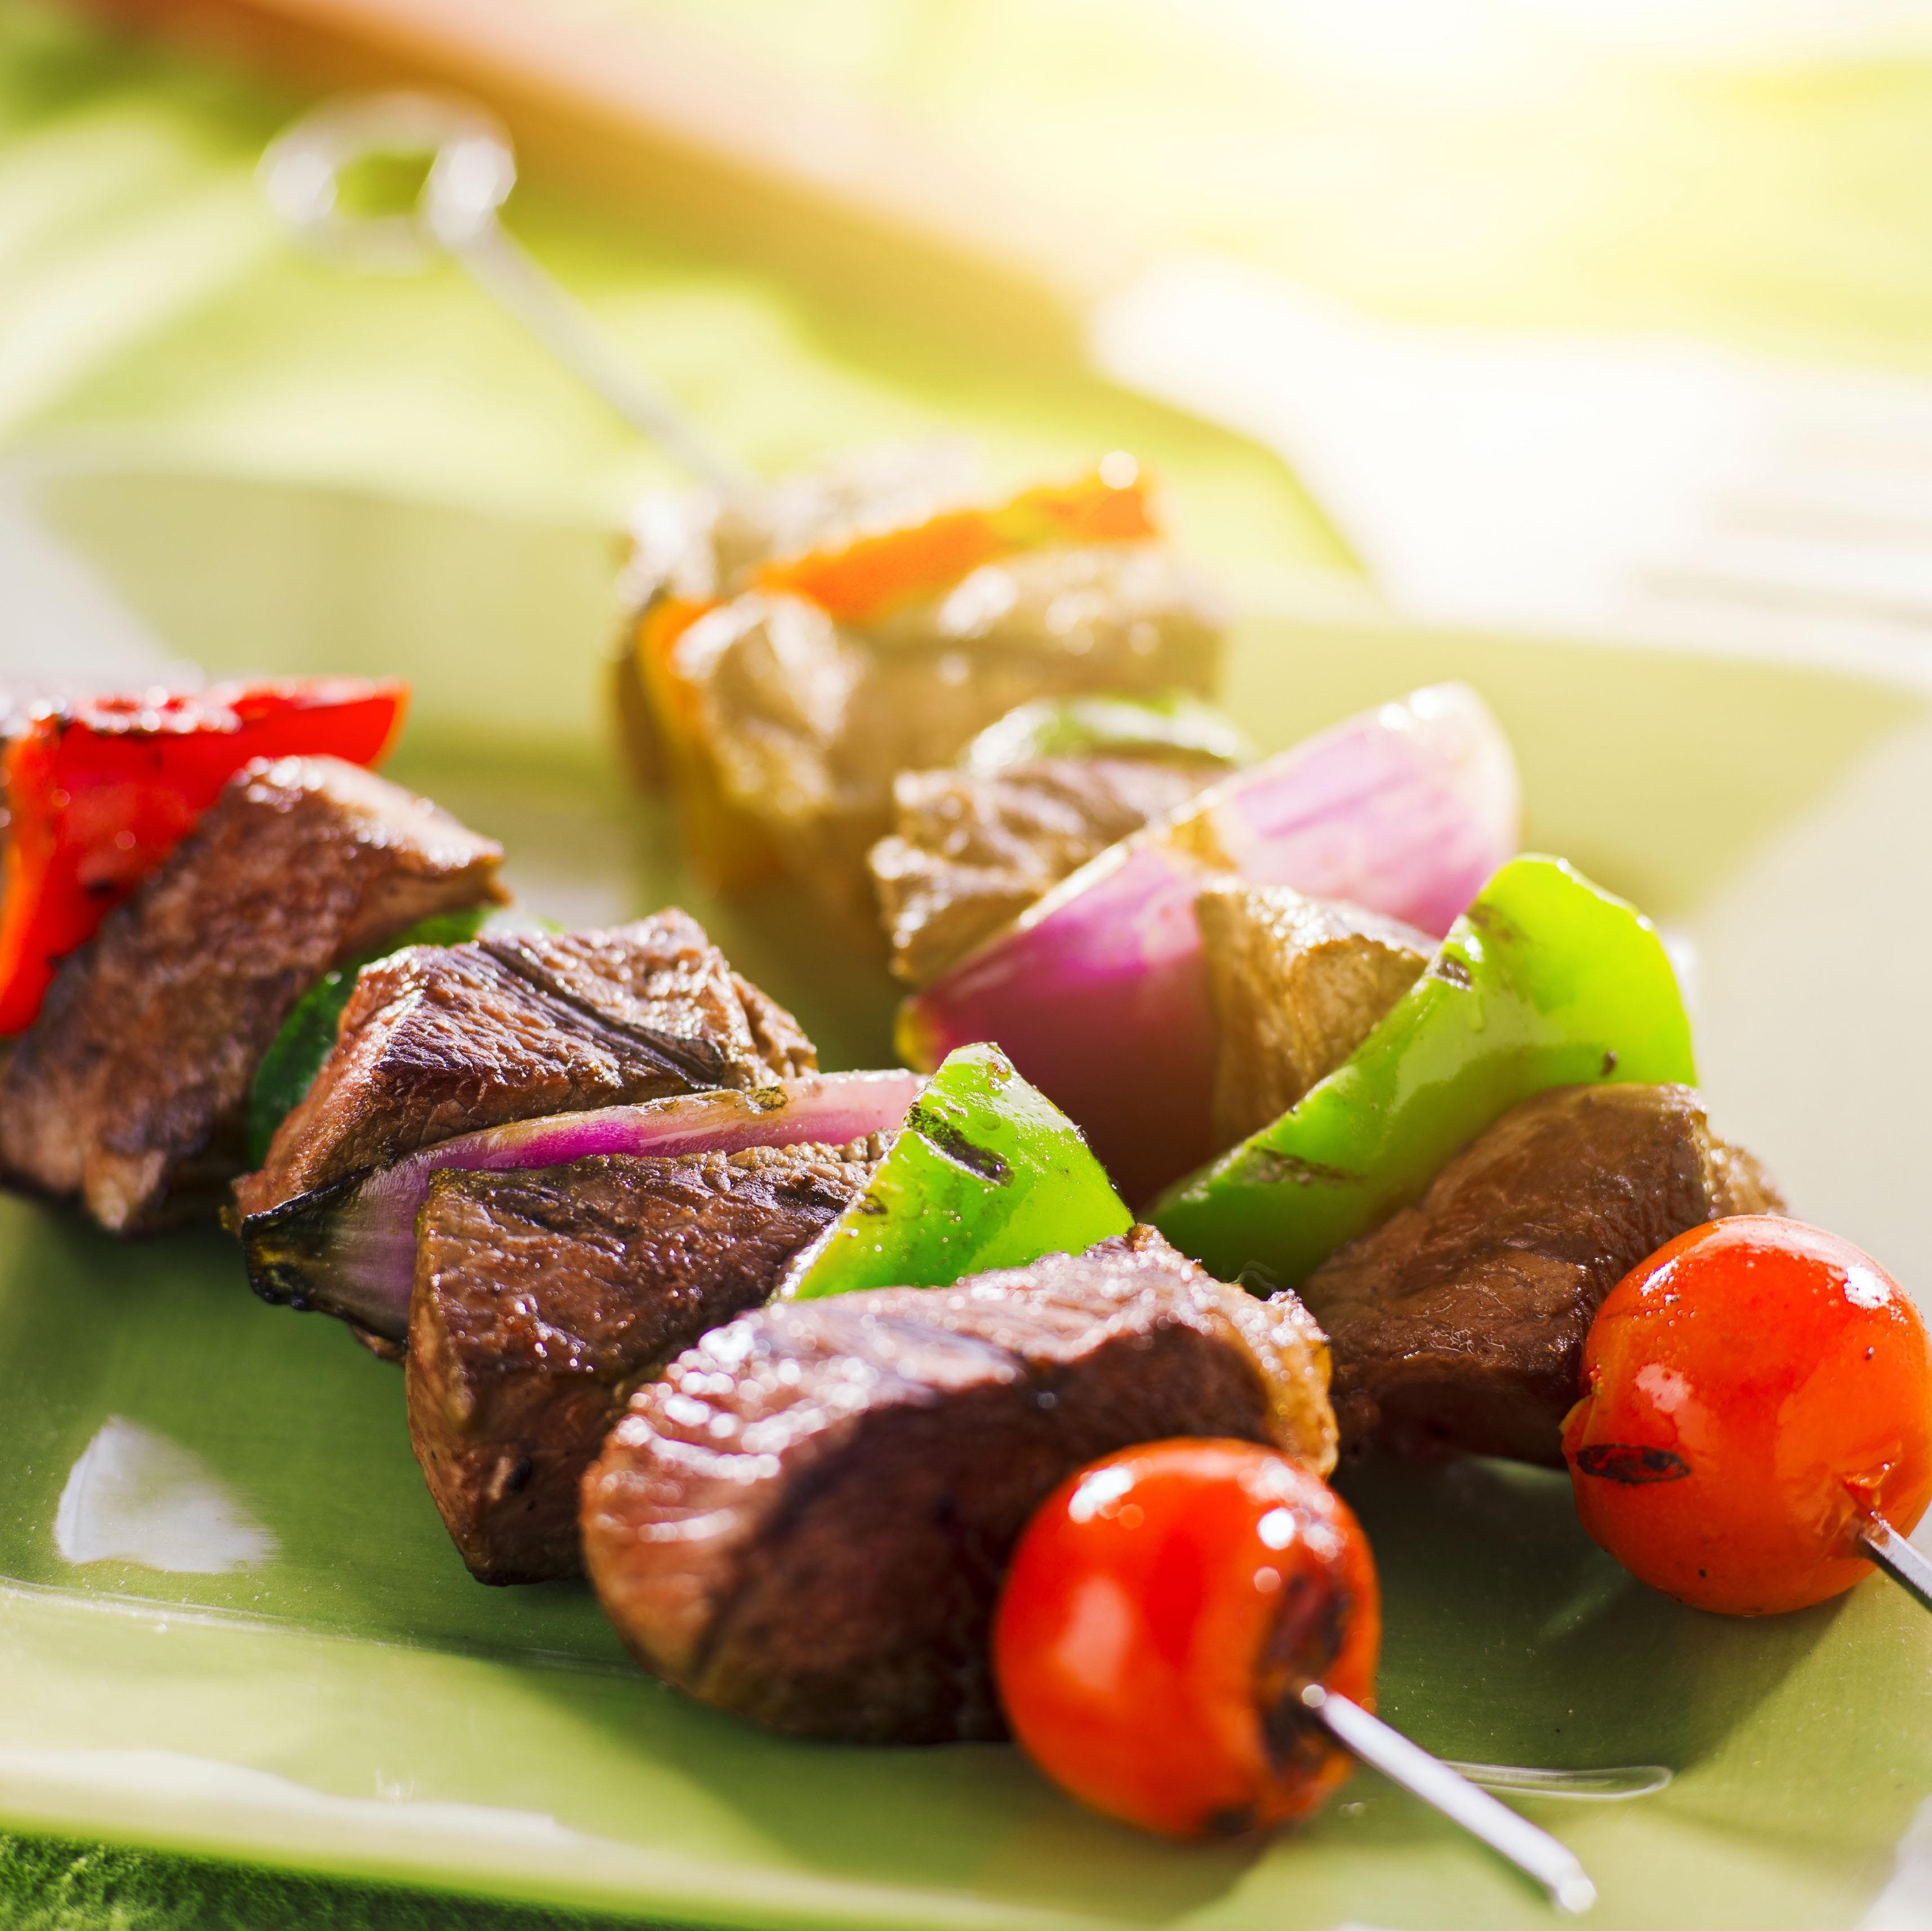 Red Hot Summer Beef Sirloin Skewers recipe.